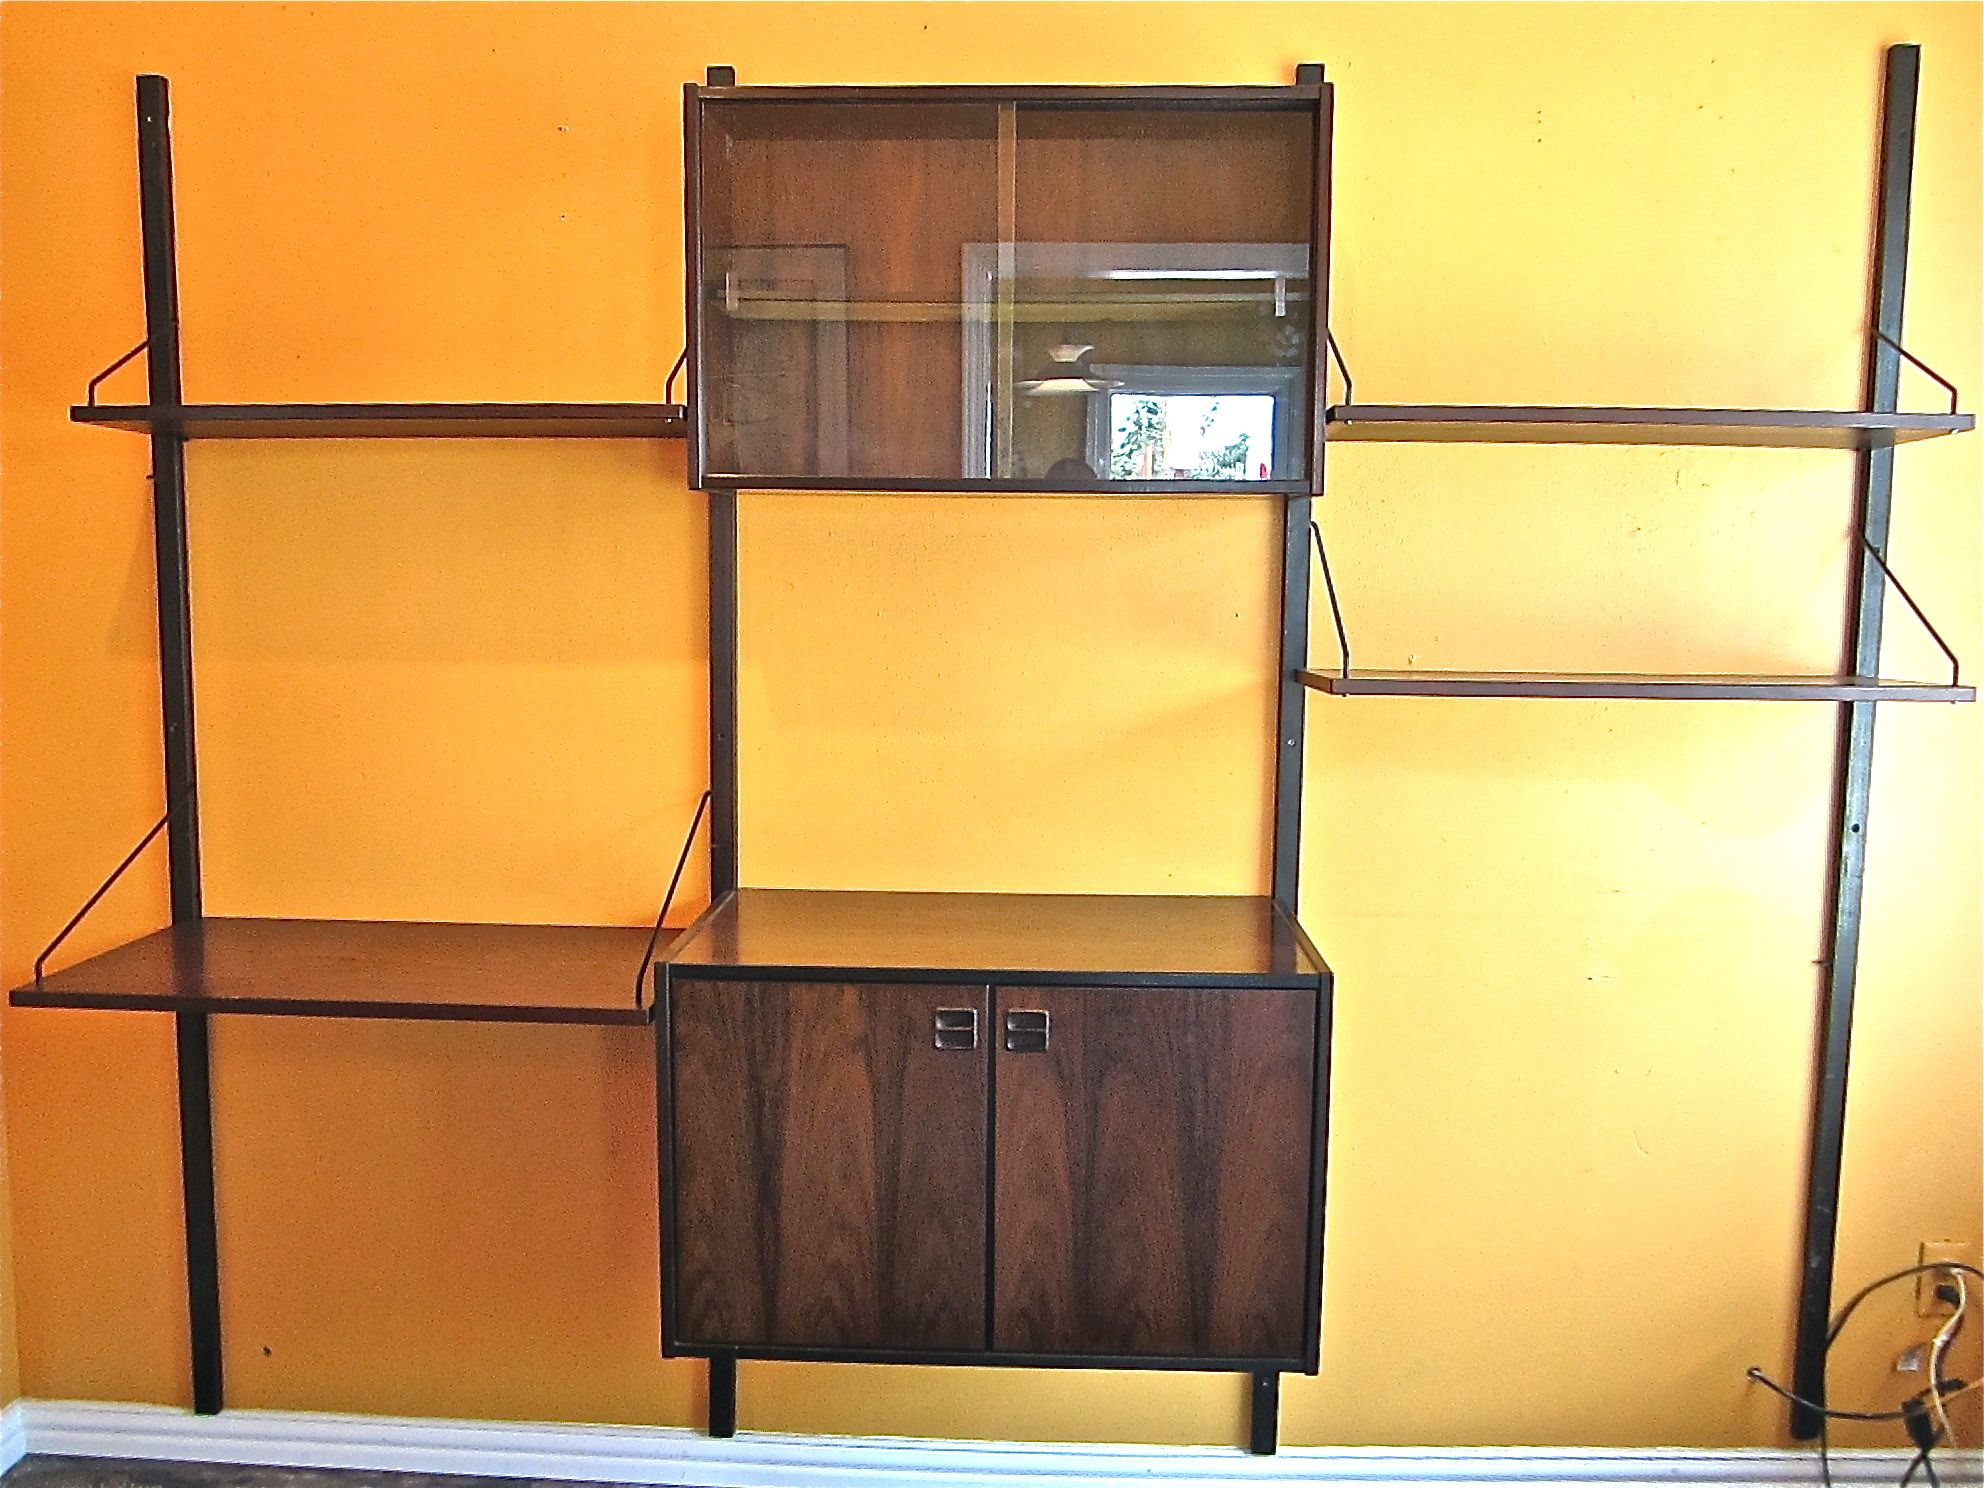 Vintage midcentury wall shelves ideas for the house pinterest